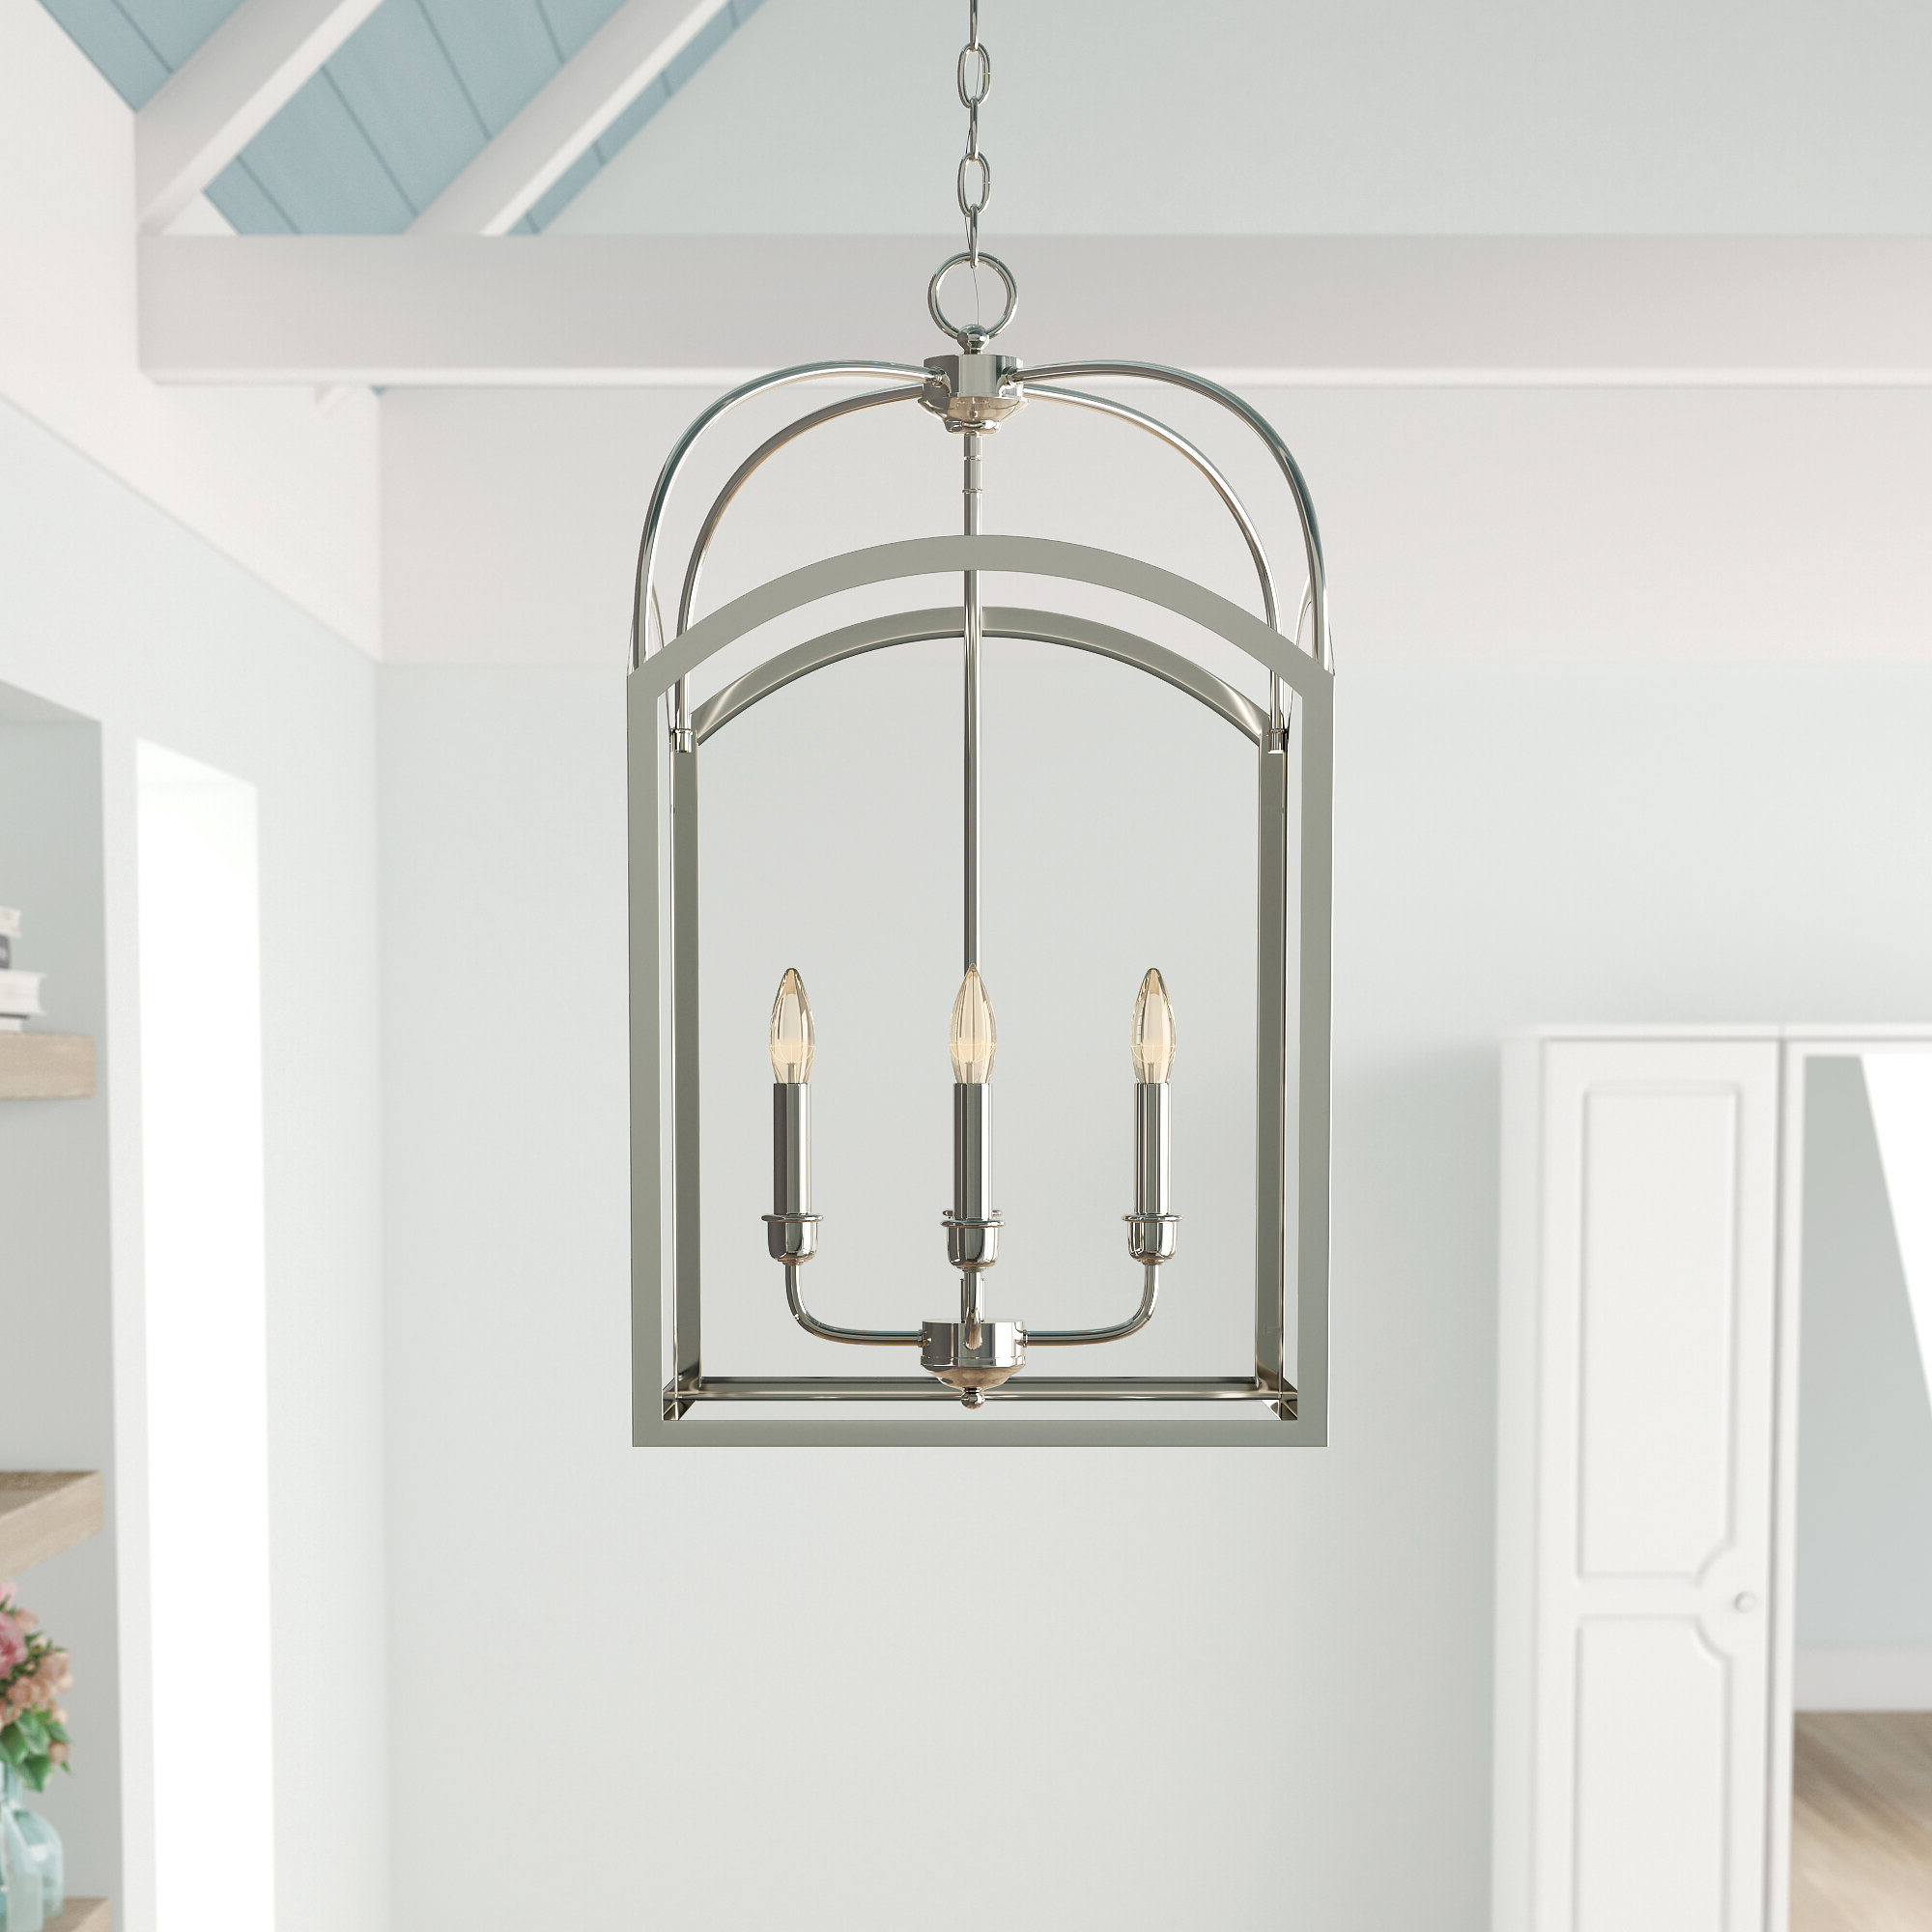 Most Current Mount Airy 4 Light Lantern Geometric Pendant Intended For Chauvin 3 Light Lantern Geometric Pendants (View 15 of 25)